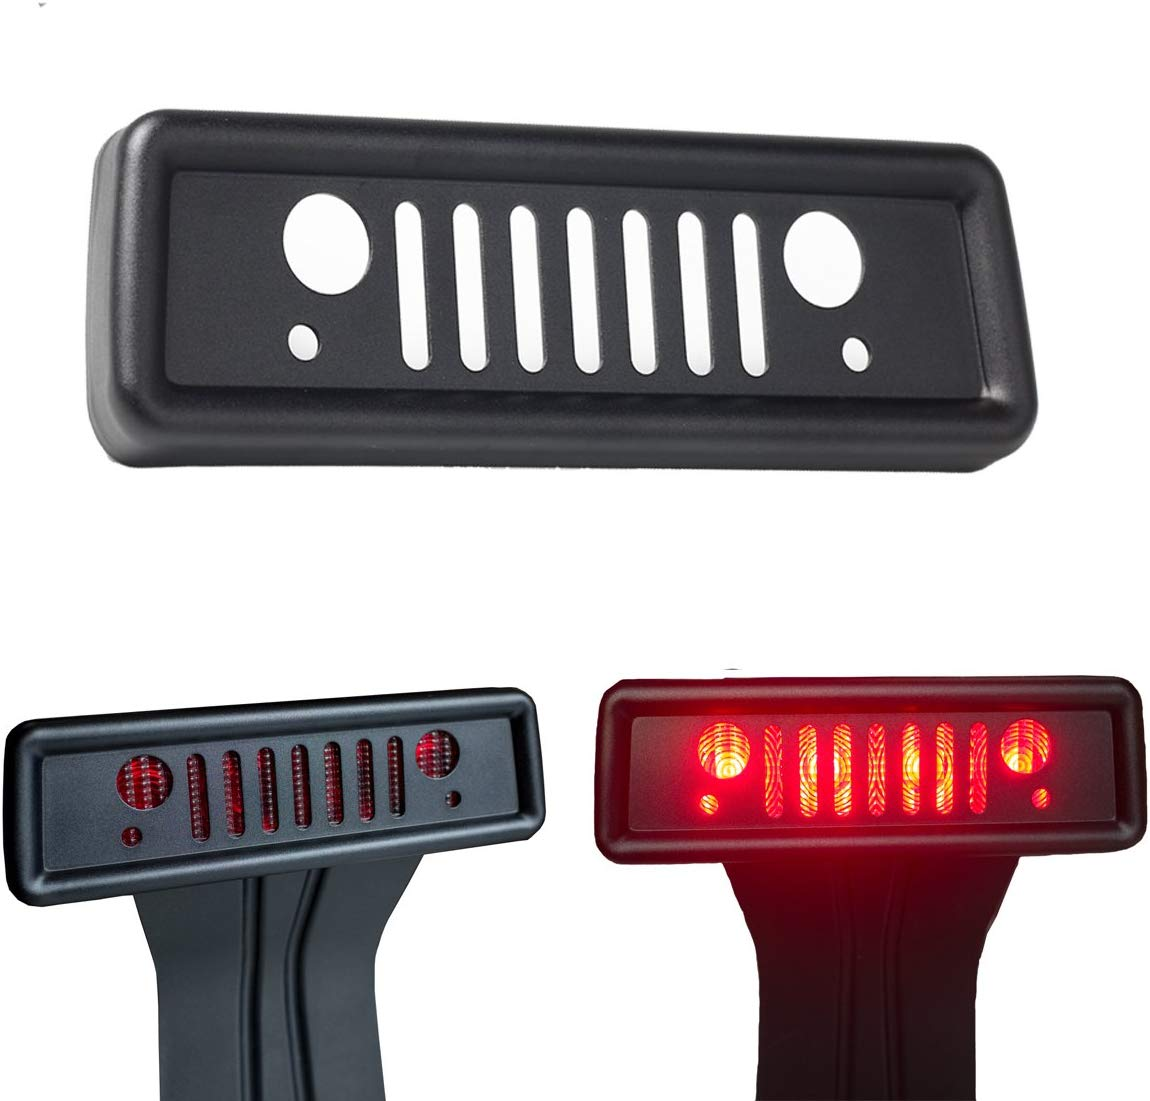 Brake Light Cover For Jeep Wrangler Third Tail Light Cover Rear Lamp Protector For 2007-2017 Jeep Wrangler JK And JKU Unlimited